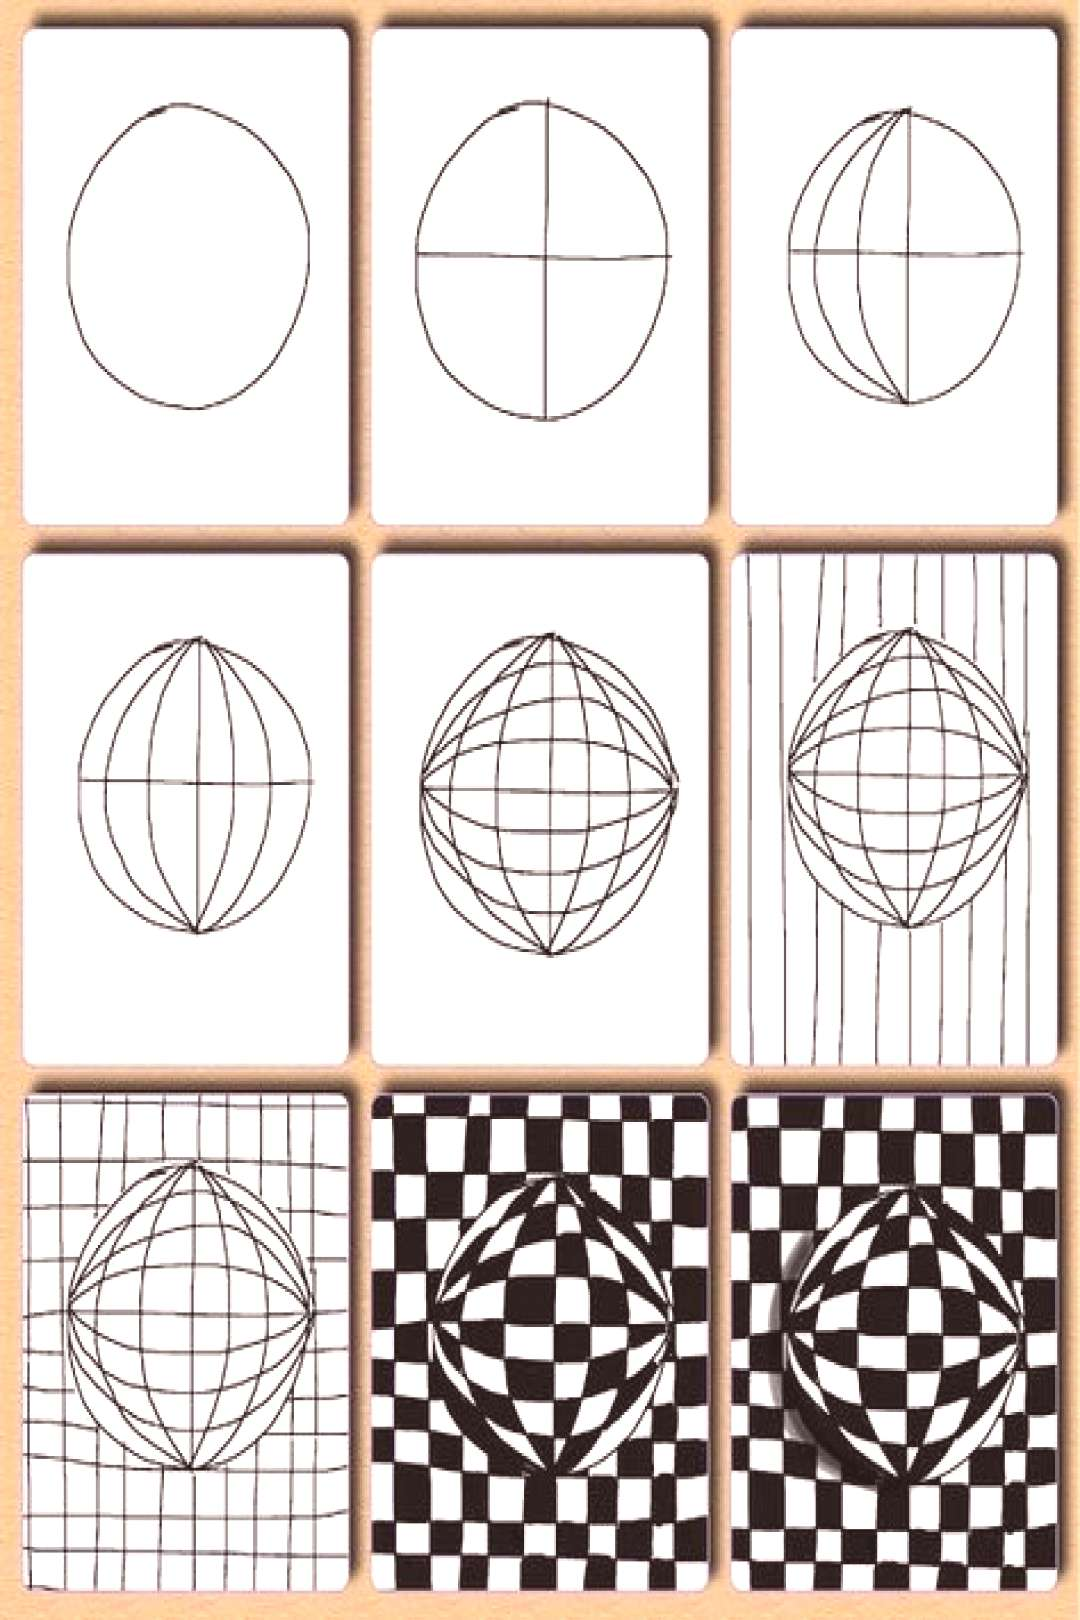 Op art, also known as optical art, is a style of visual art that uses optical illusions. Op art wor